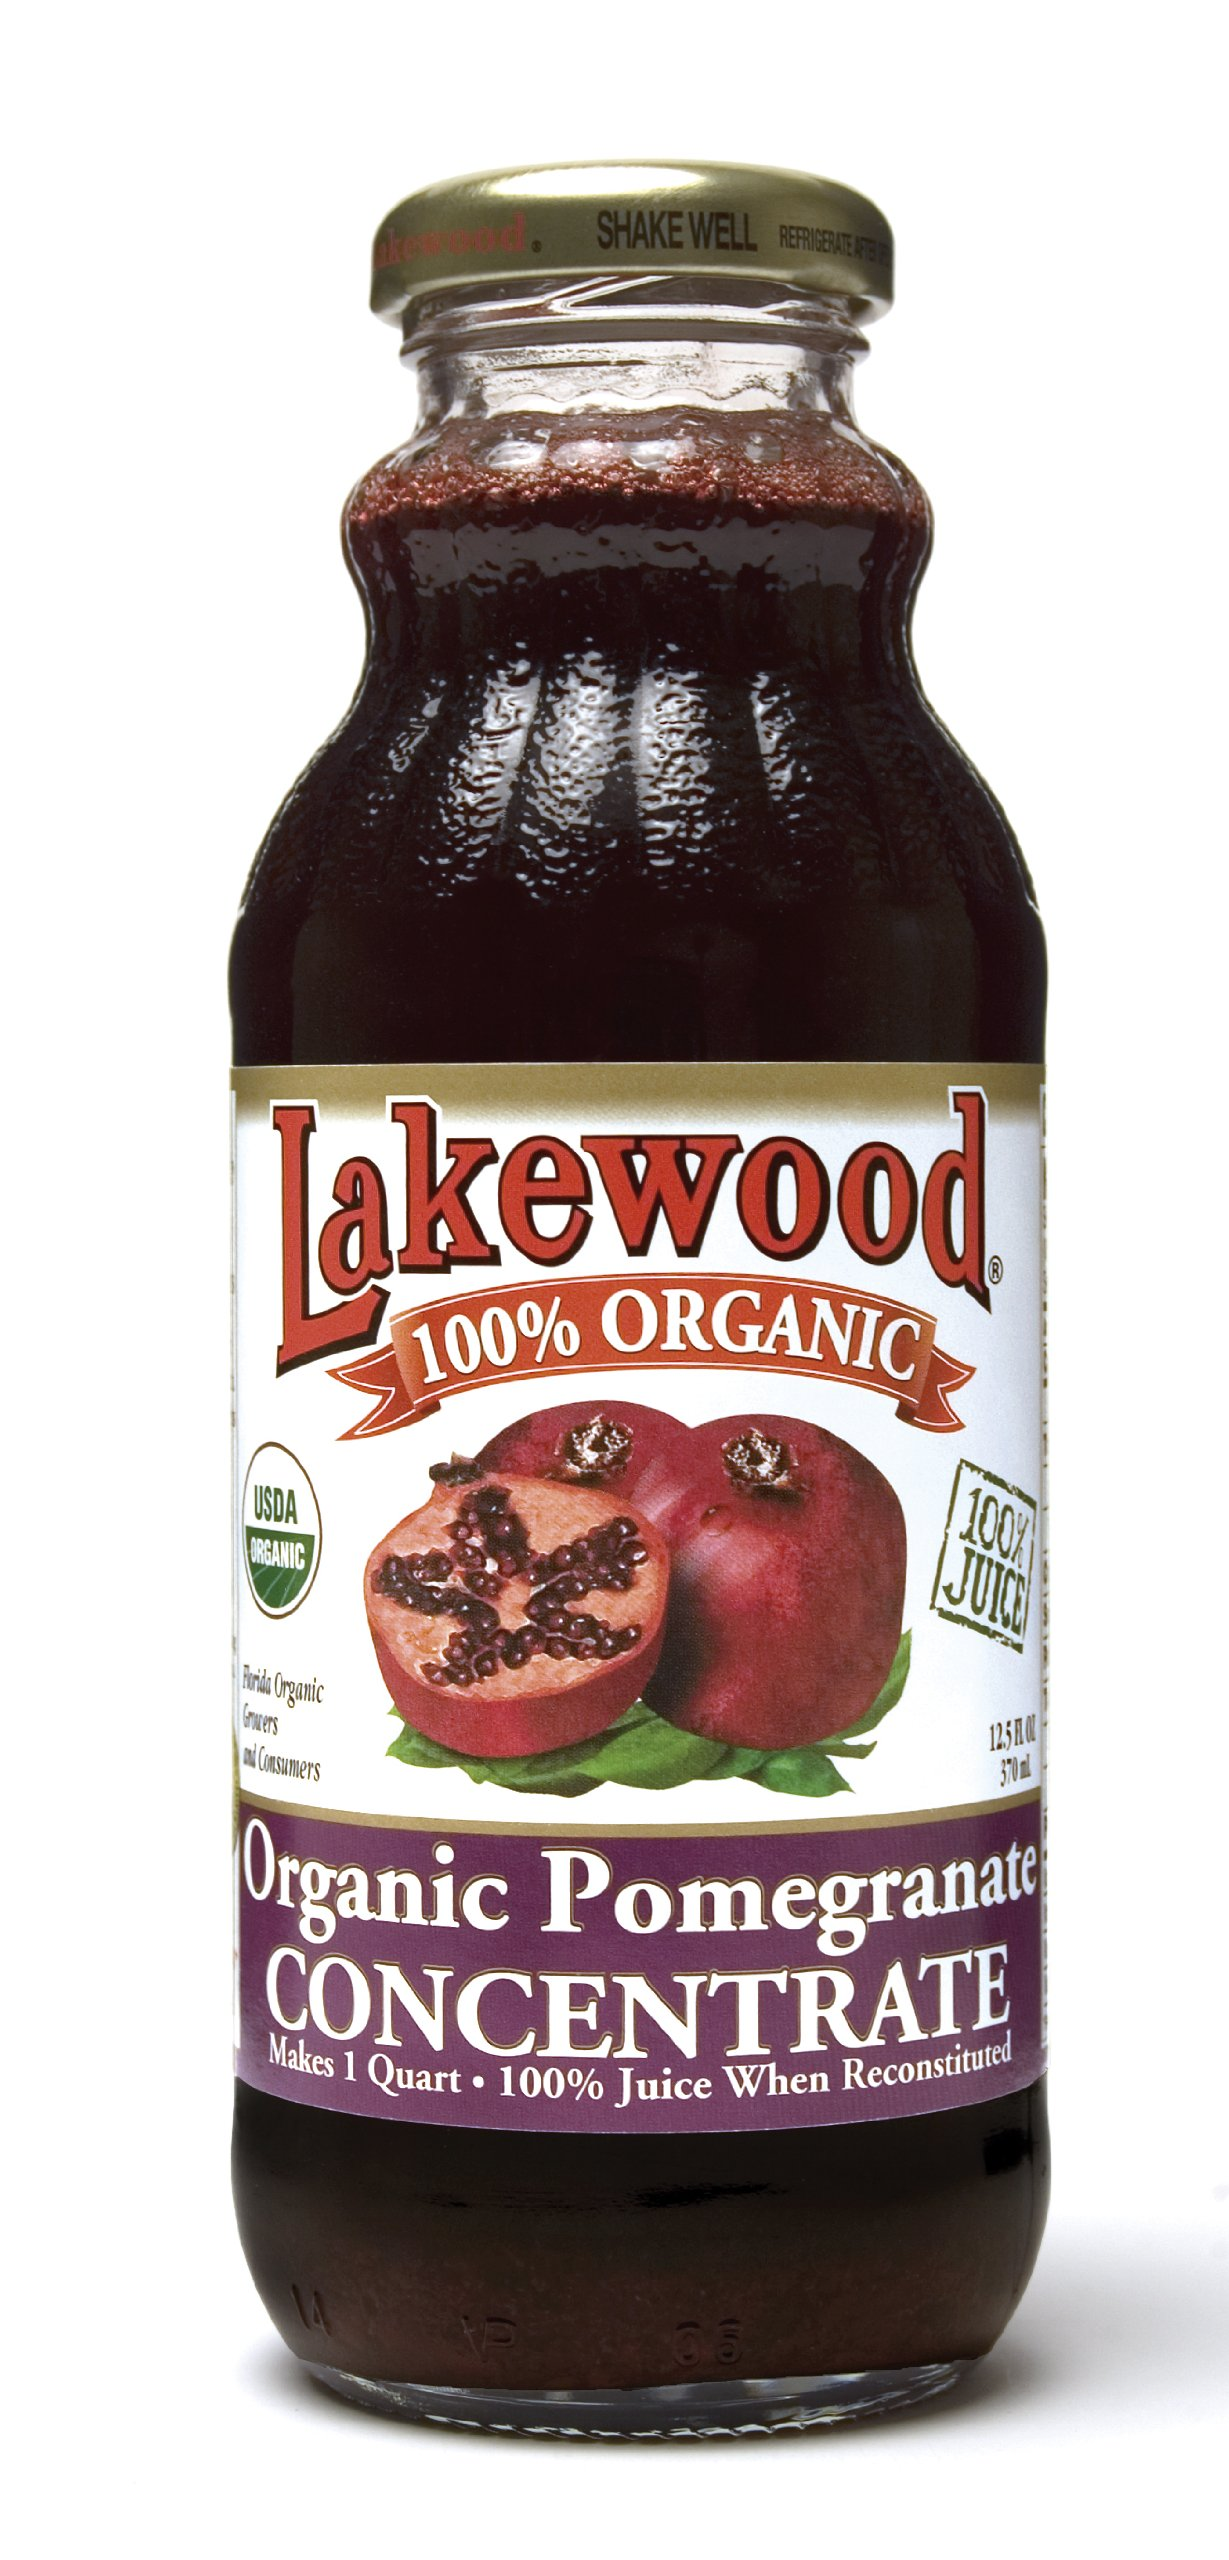 Lakewood Organic Pomegranate Concentrate Juice, 12.5-Ounce Bottles (Pack of 12)